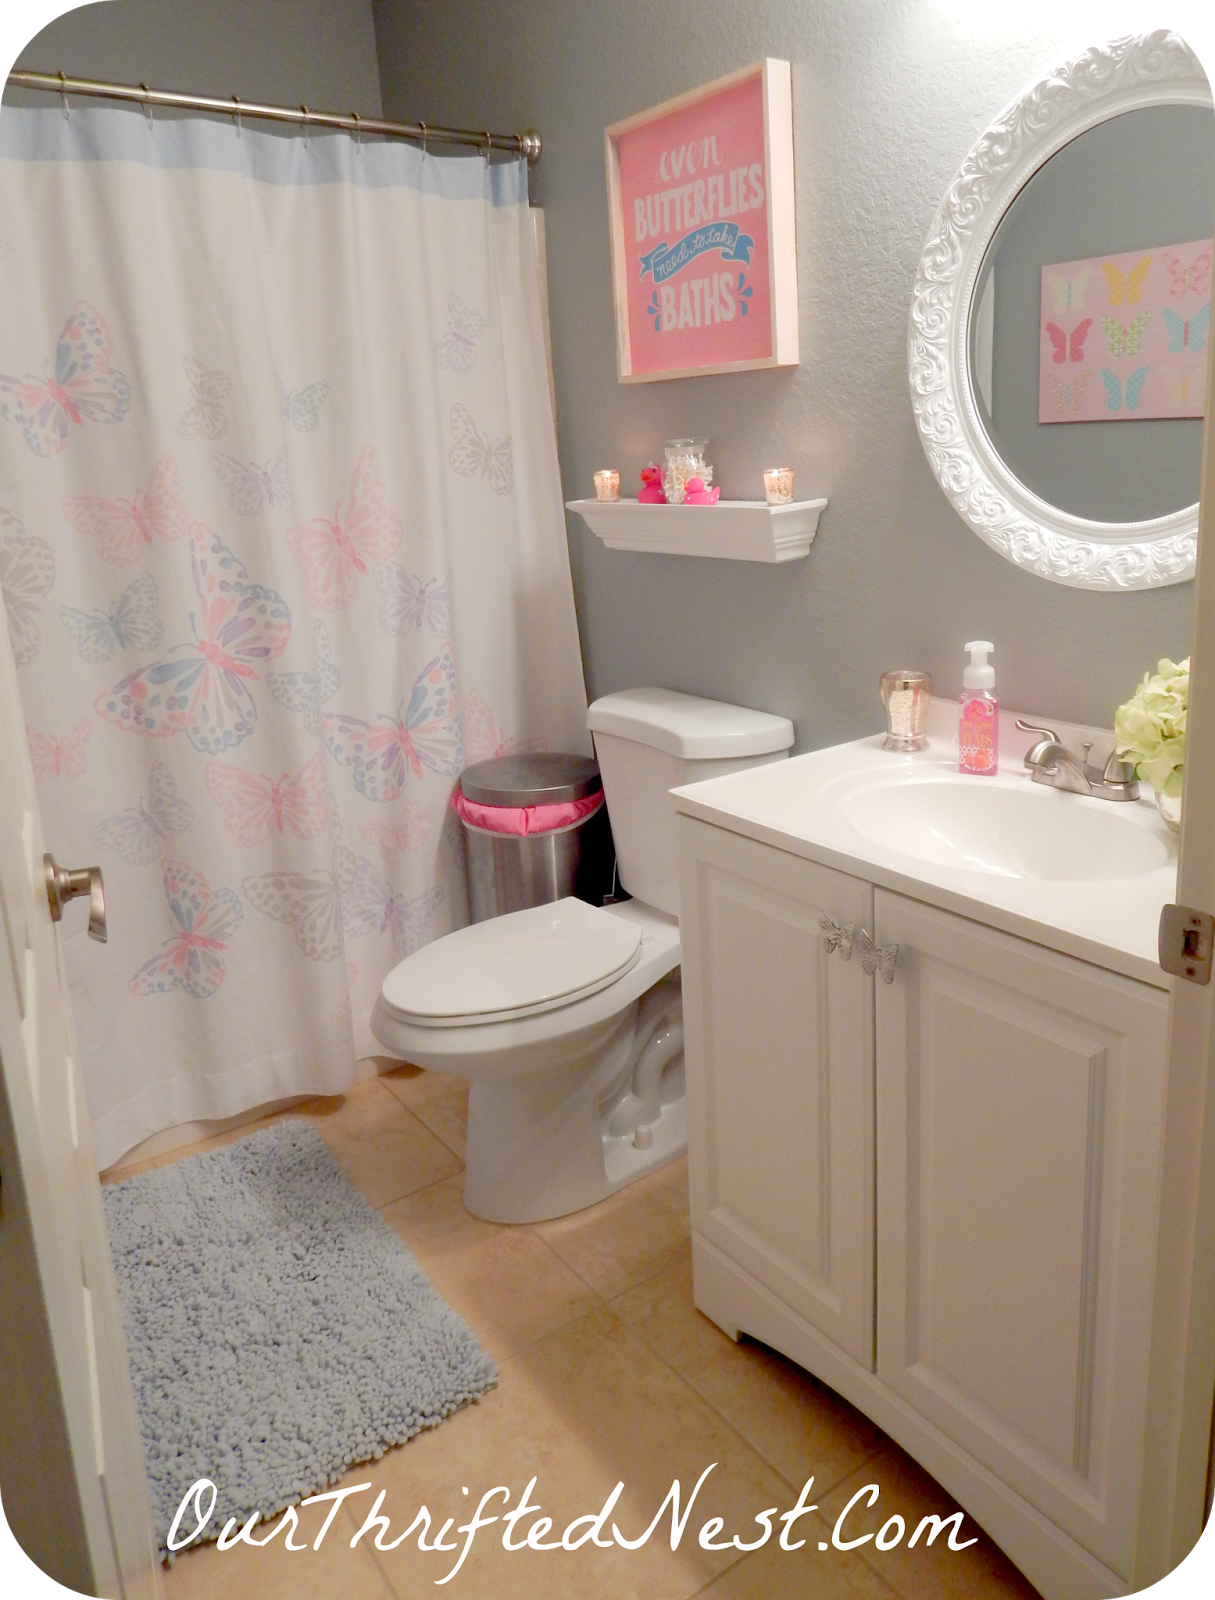 Bathroom Decor Small Littles Girls Butterfly Pink Gray Blue - Blue and gray bathroom for bathroom decorating ideas